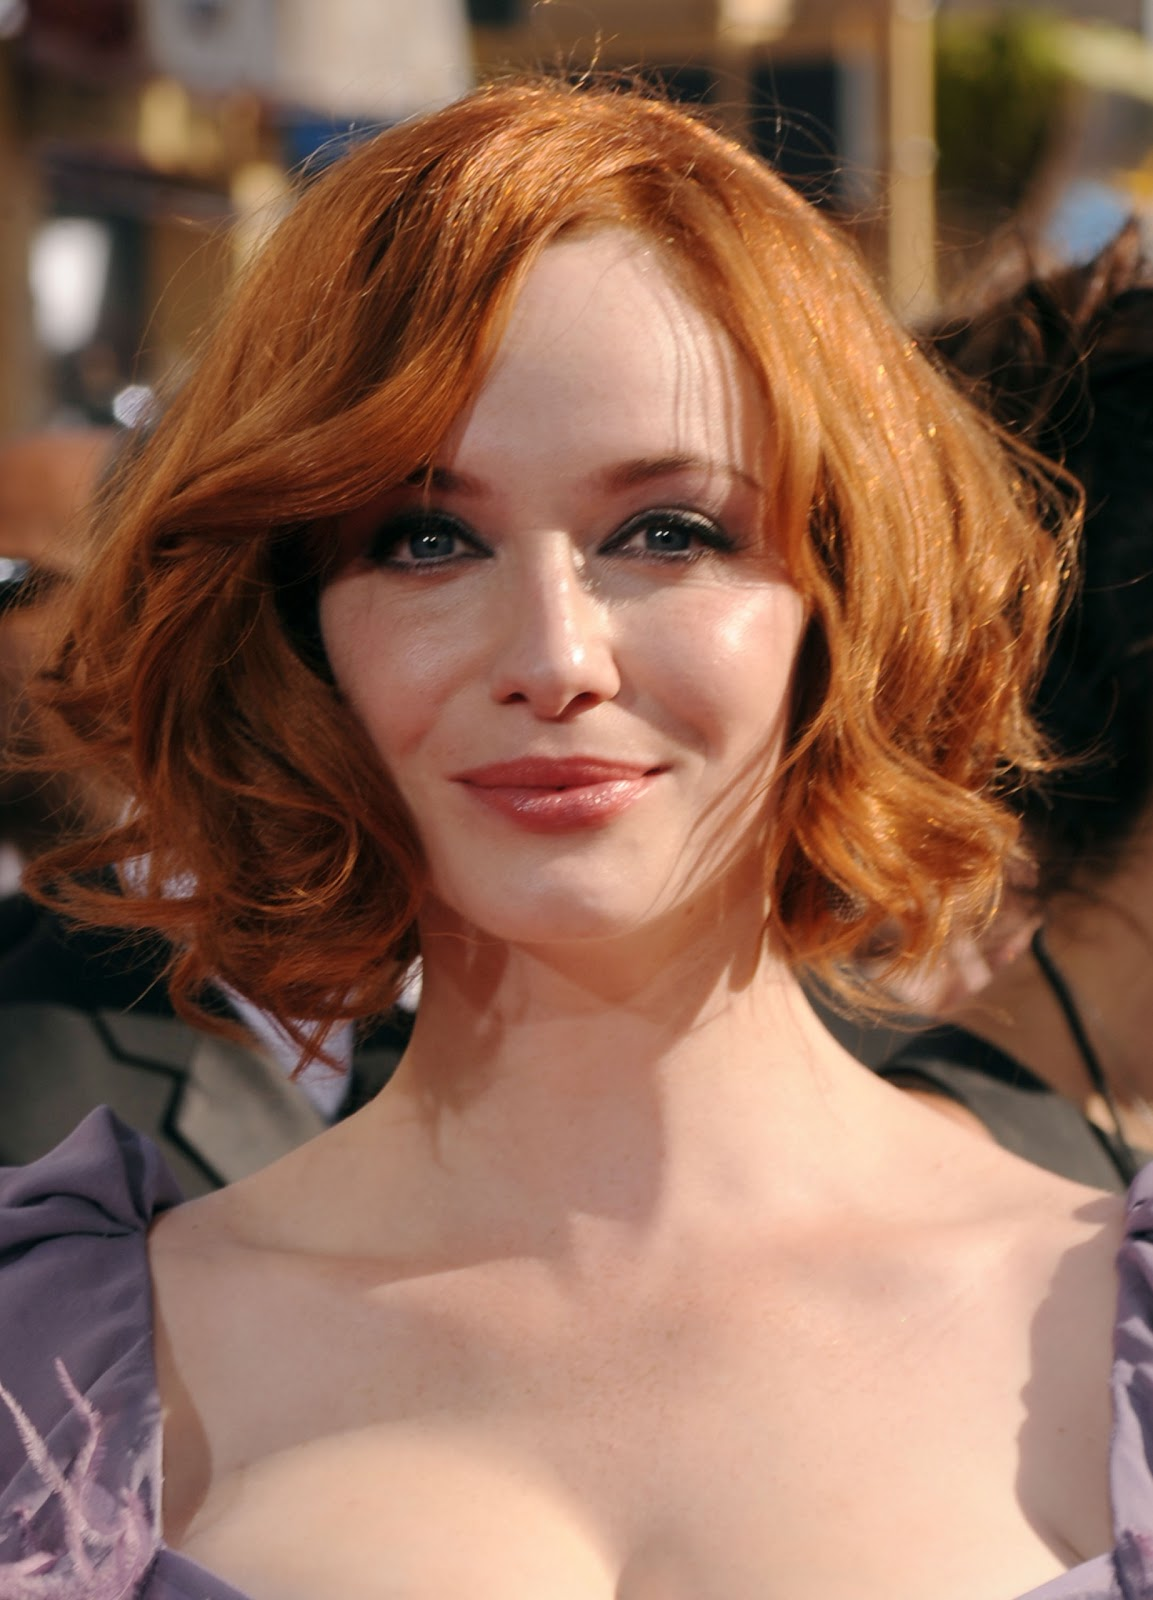 Beautiful Celebrities Christina Hendricks Hot